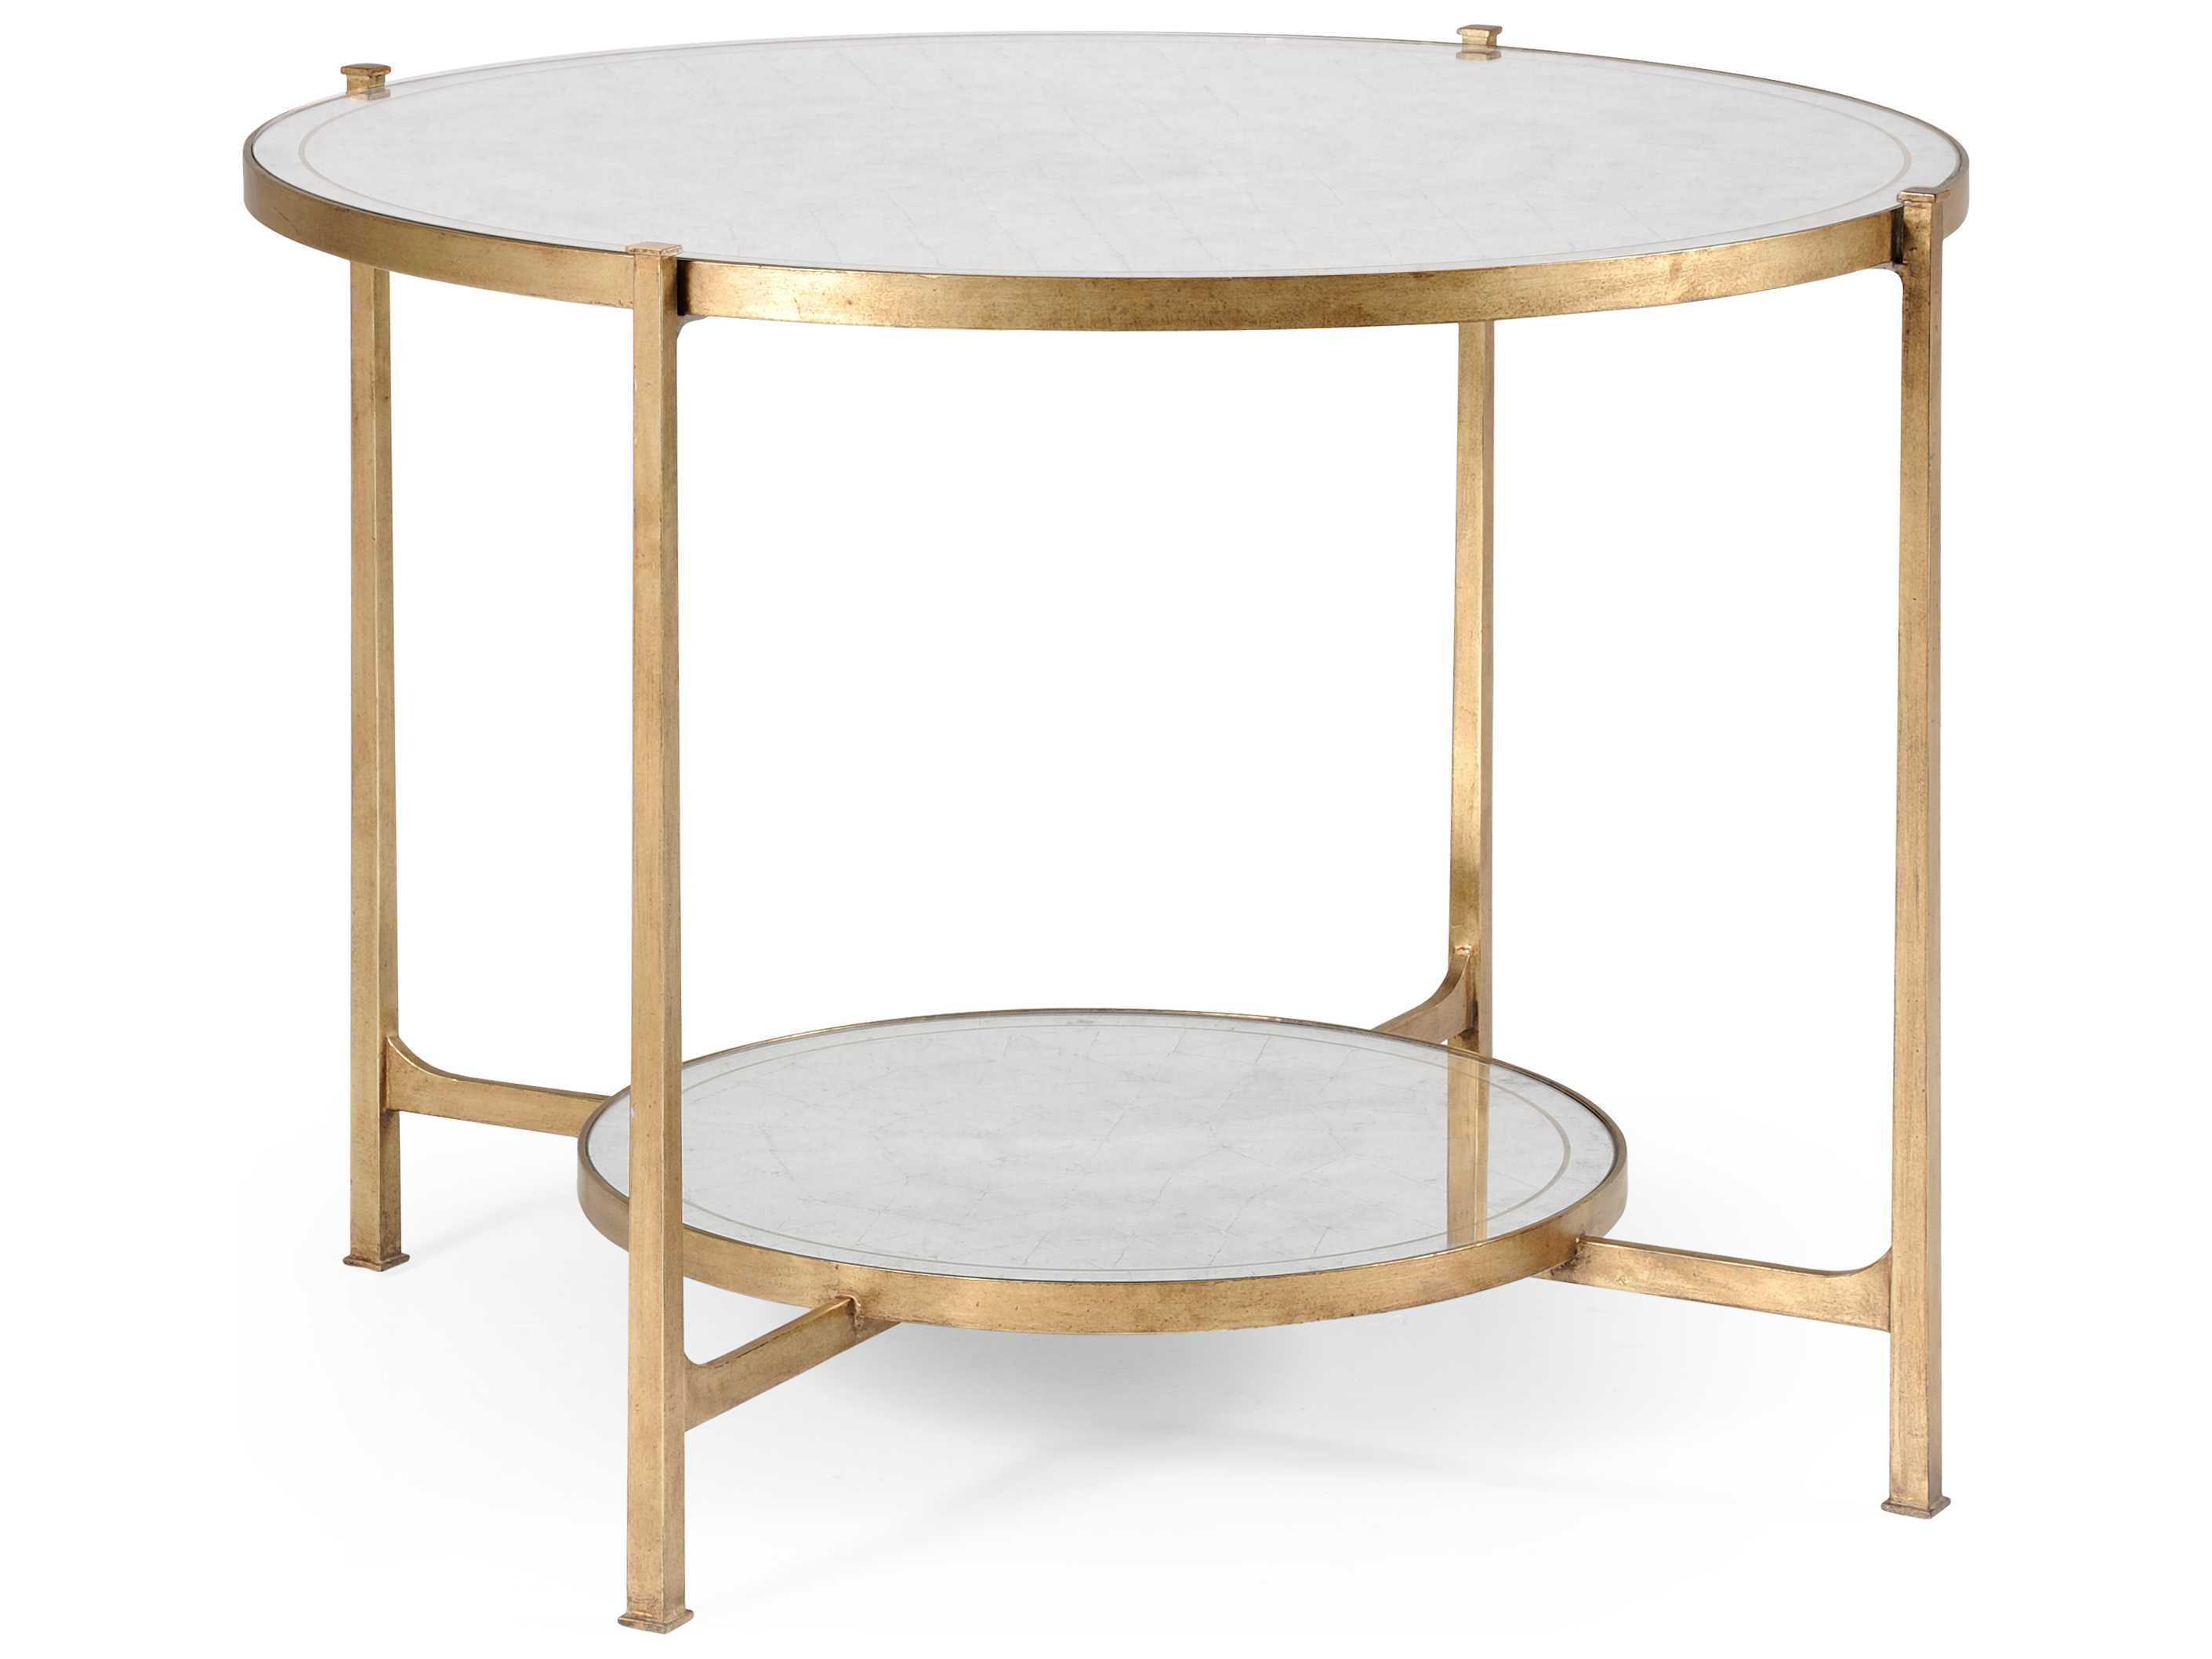 Front Foyer Round Table : Jonathan charles luxe gilded iron round foyer table